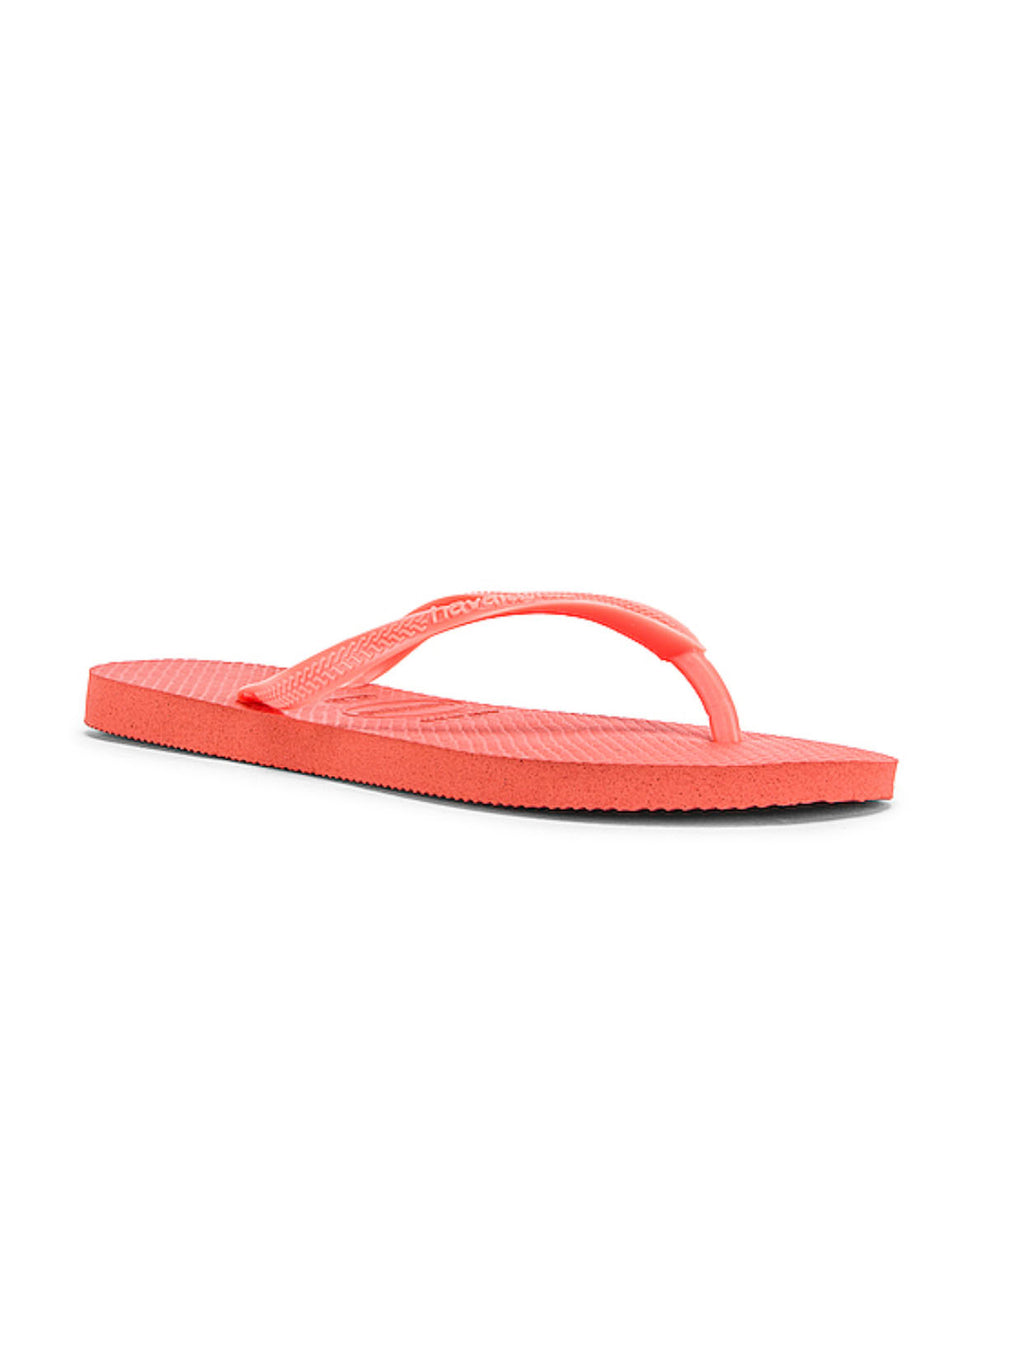 Havaianas Slim Flip Flop in Cyber Orange